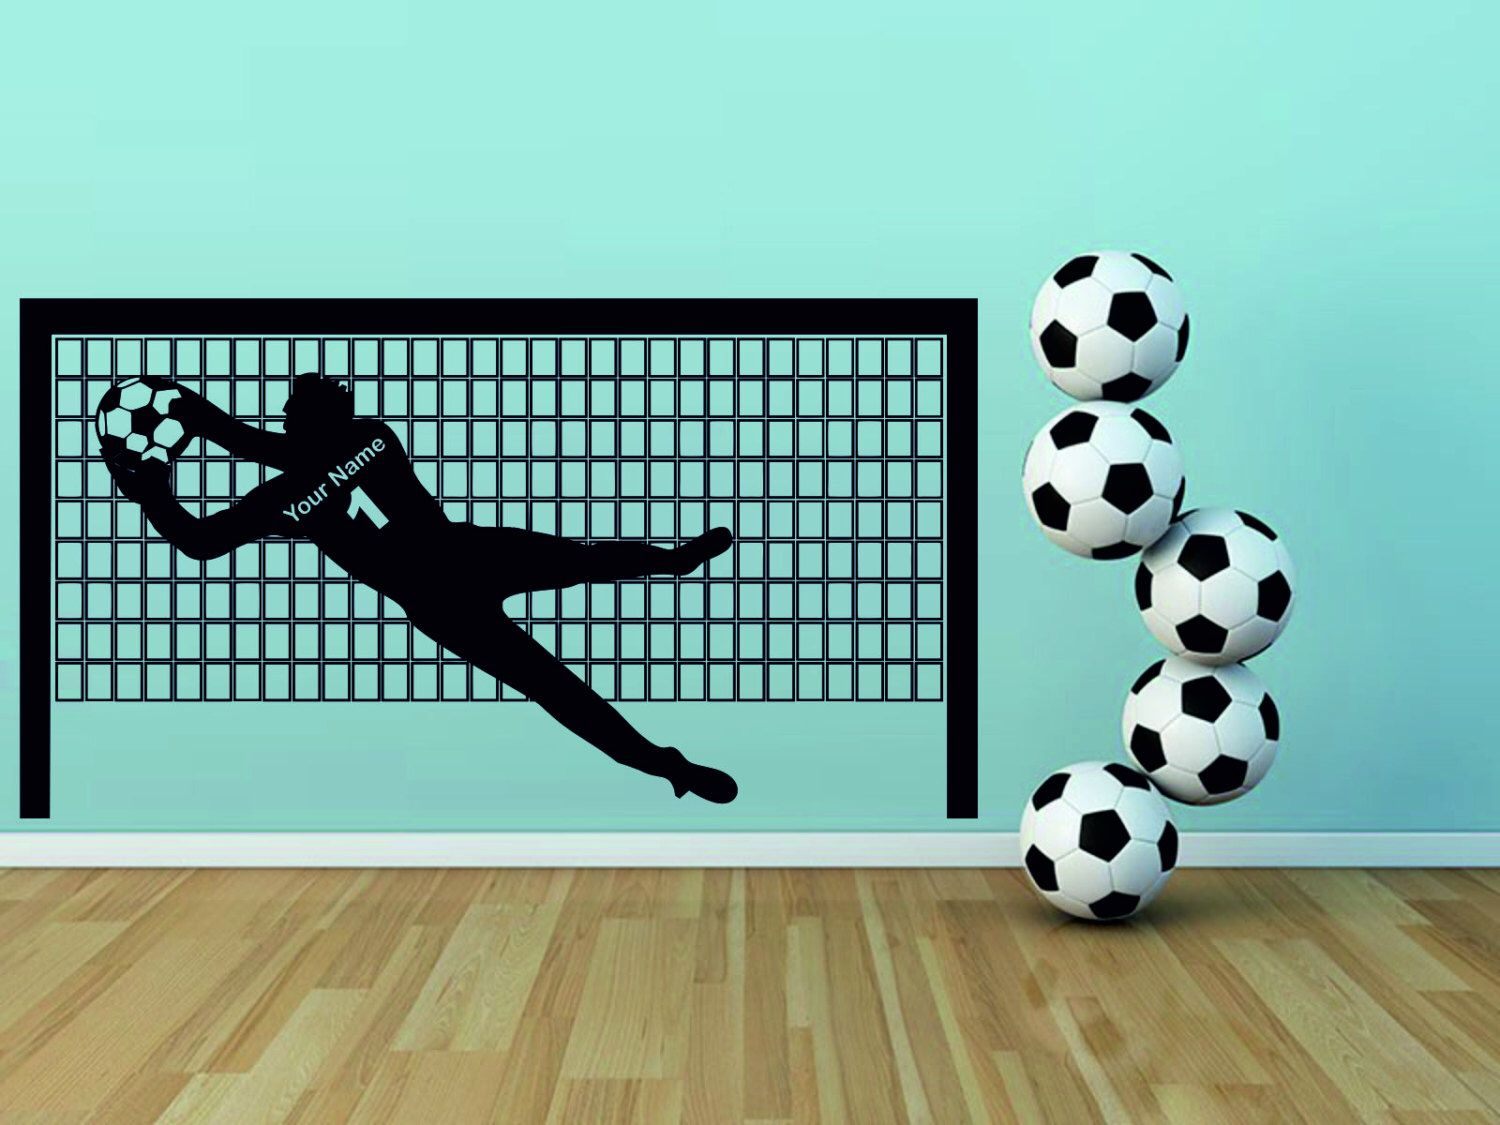 Wall Decal Soccer Goal Wall Decal Football Goal Decals Stickers - Sporting wall decals